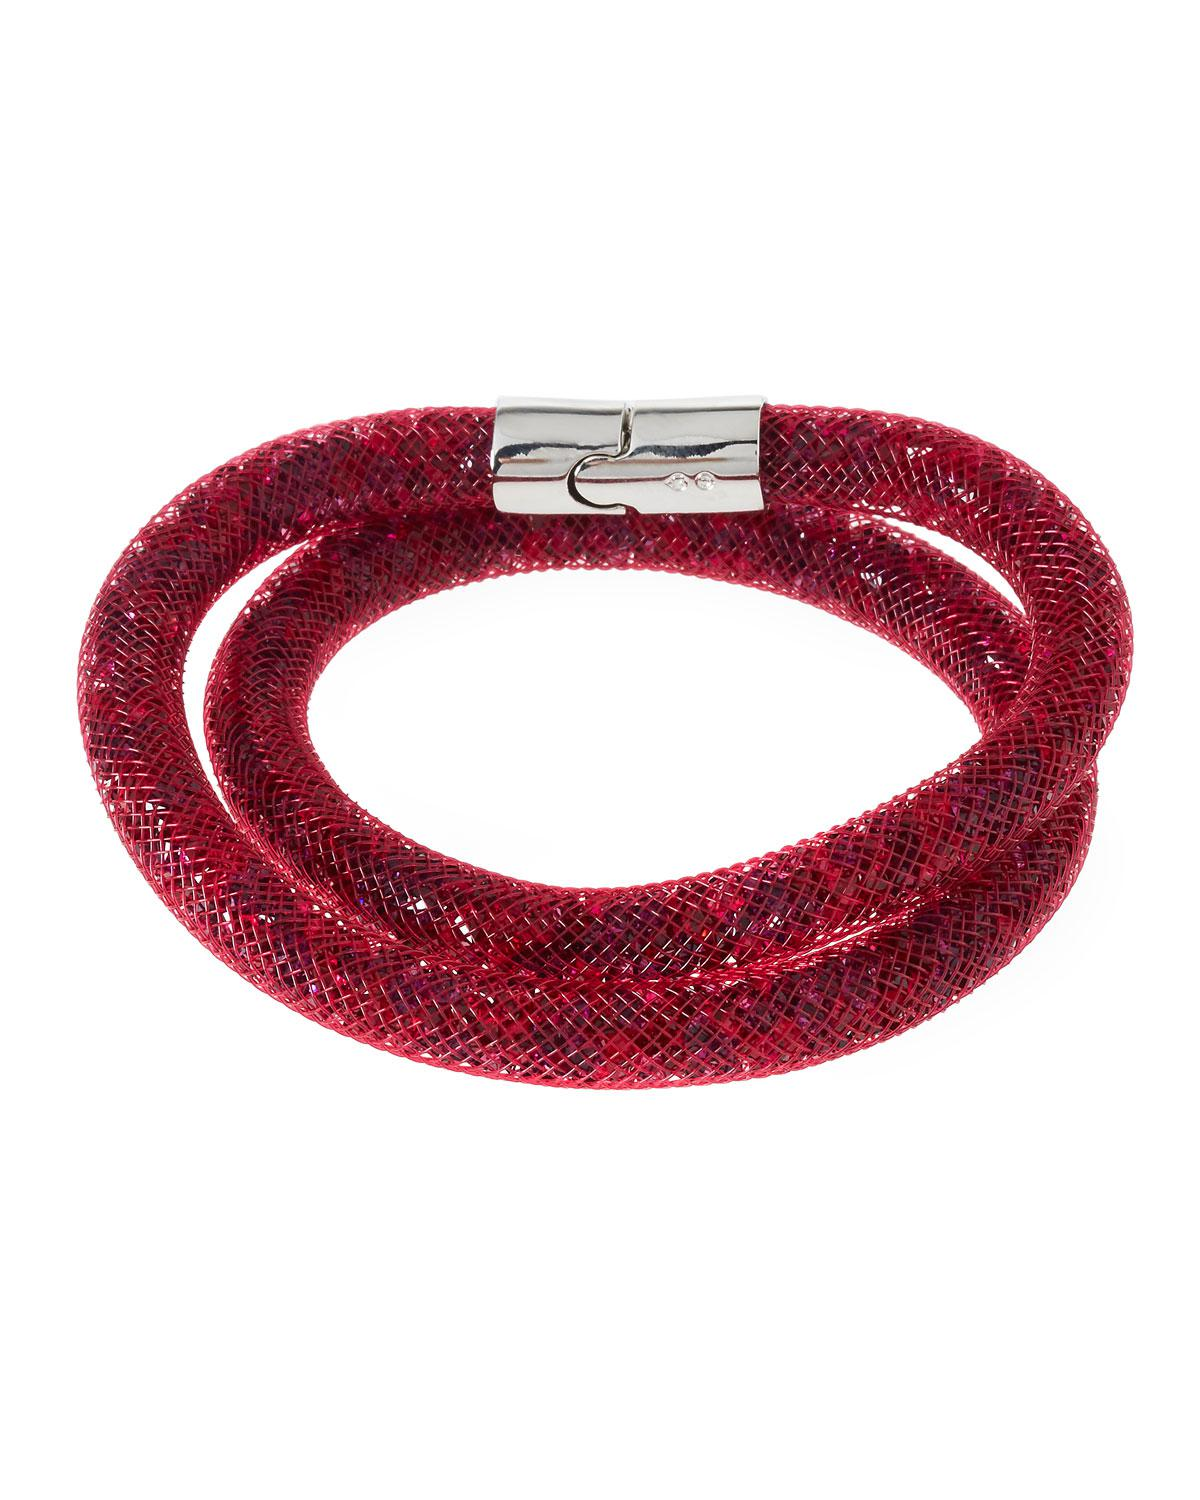 Swarovski Stardust Convertible Crystal Mesh Bracelet/Choker, Bright Red, Medium